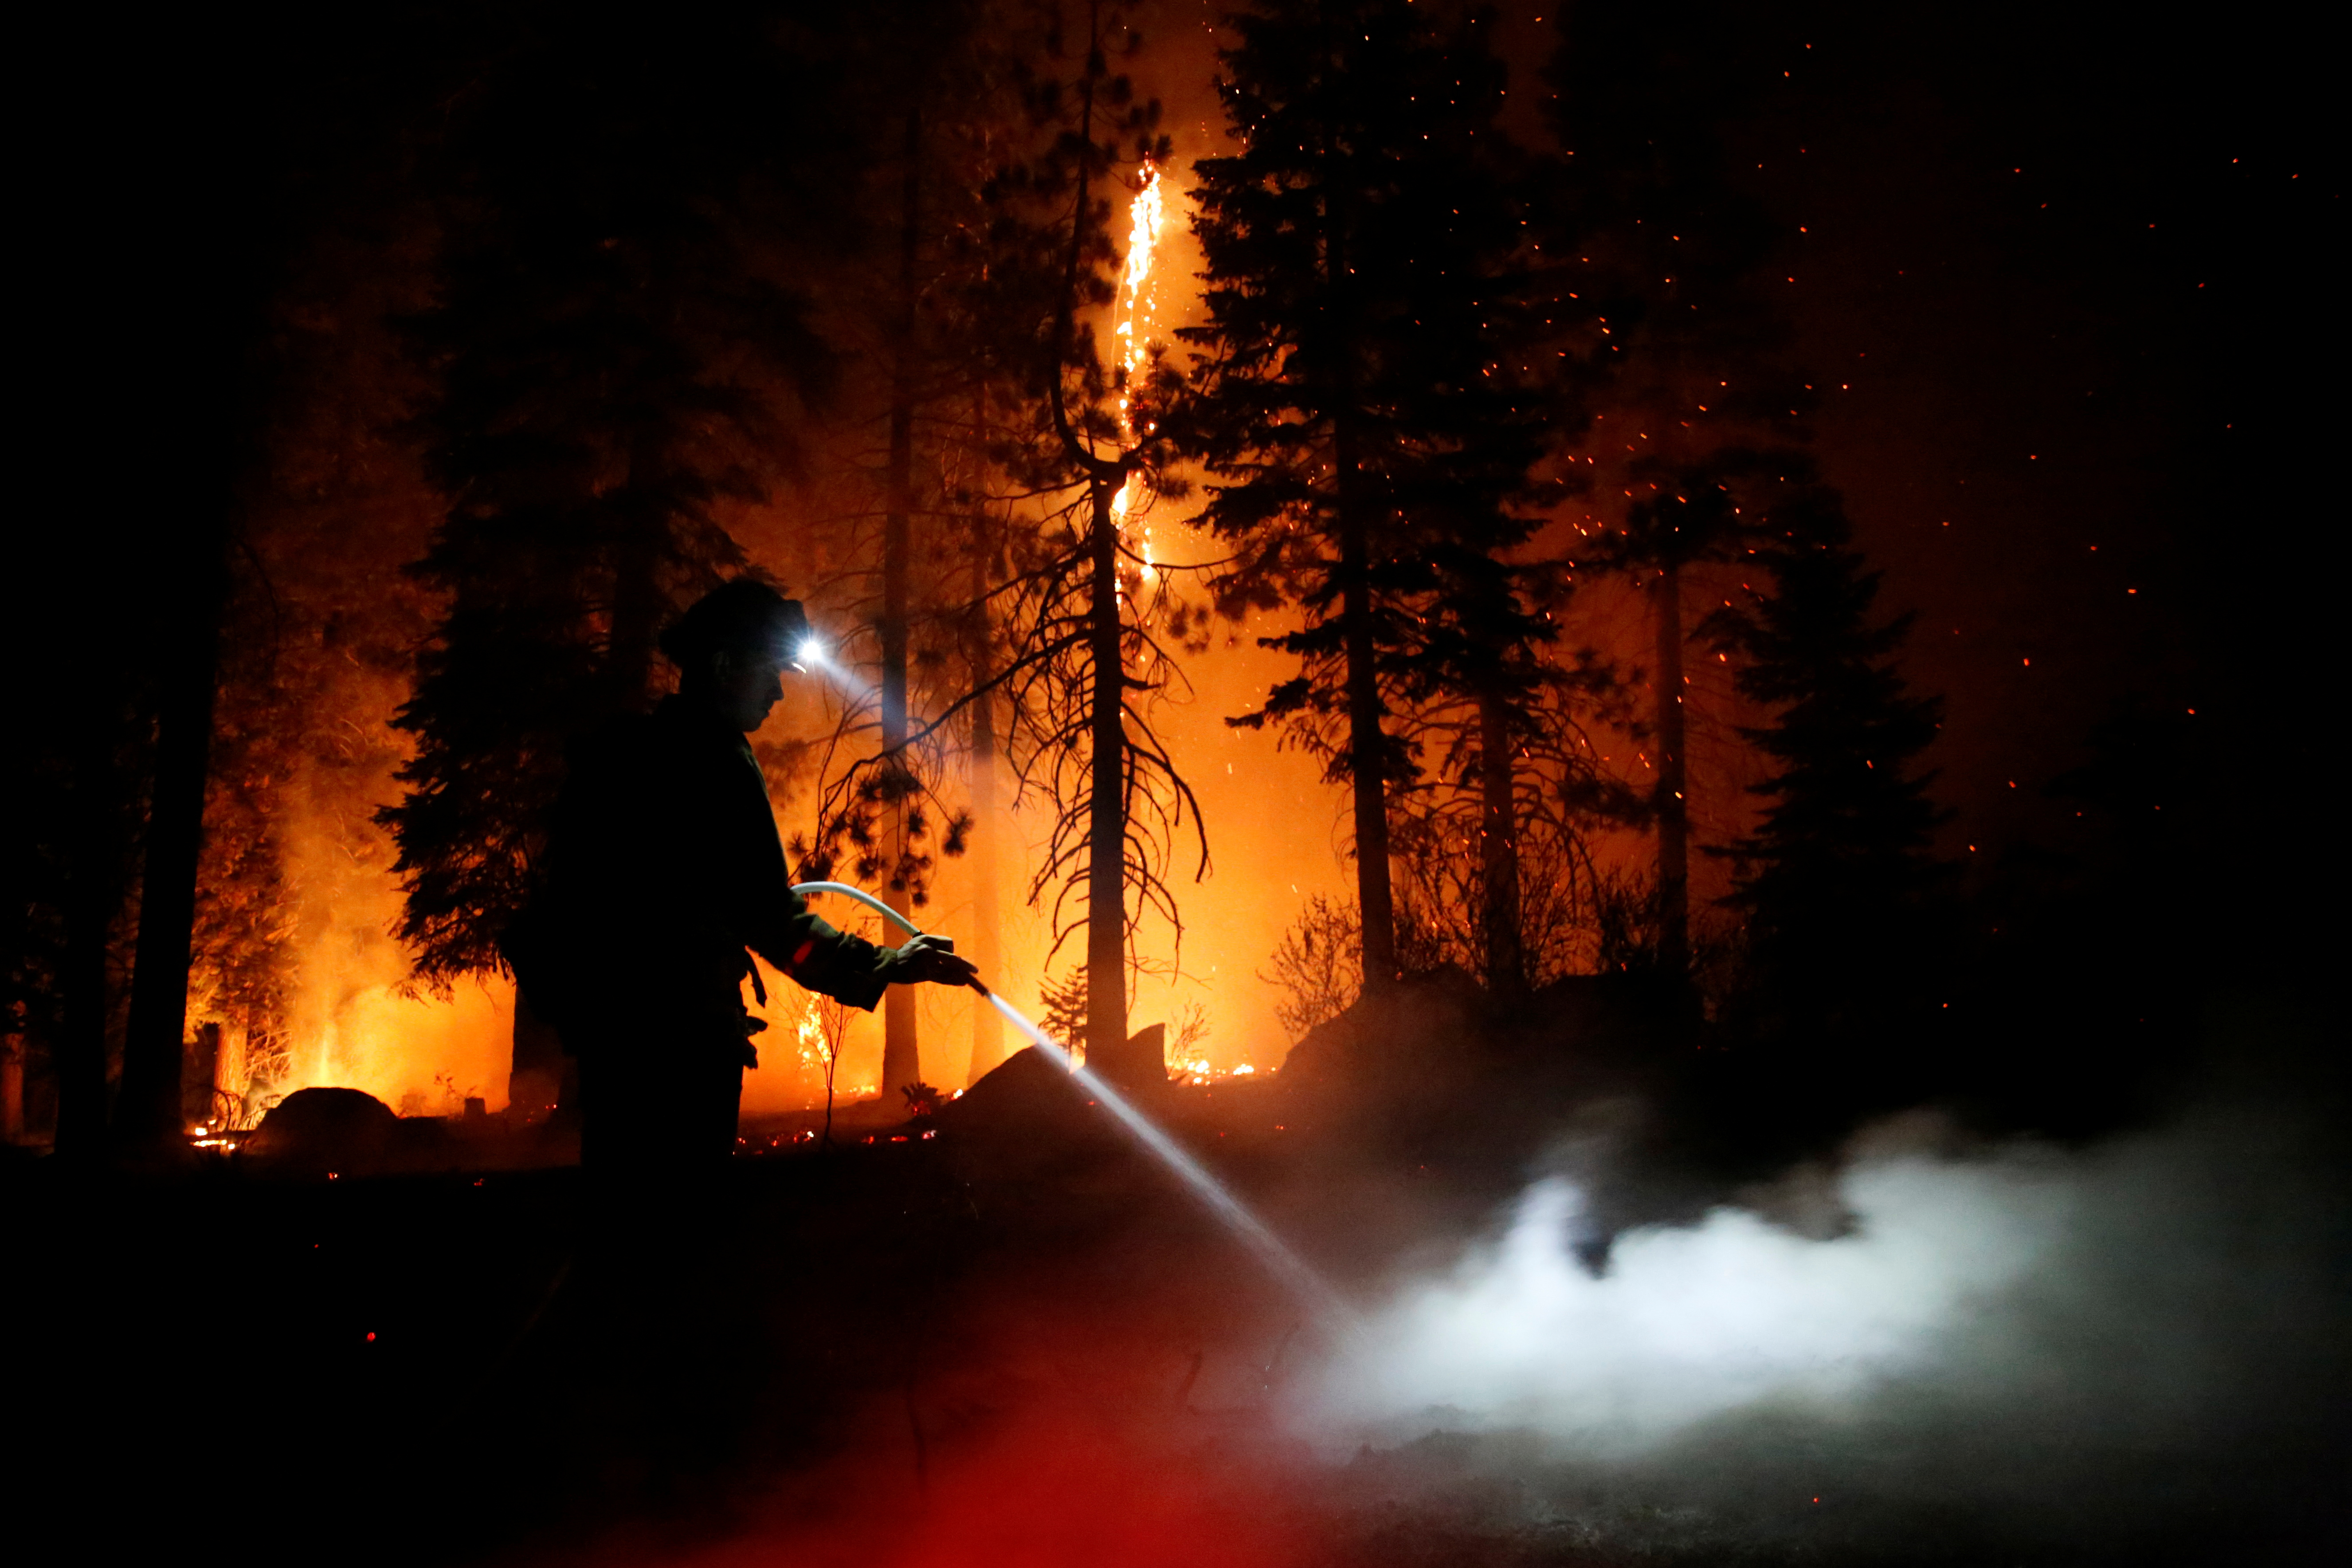 Patrick R., 27, a firefighter with Cal Fire sprays water on hot spots as flames from the Caldor Fire burn through trees in Christmas Valley near South Lake Tahoe, California, U.S., August 31, 2021.    REUTERS/Brittany Hosea-Small